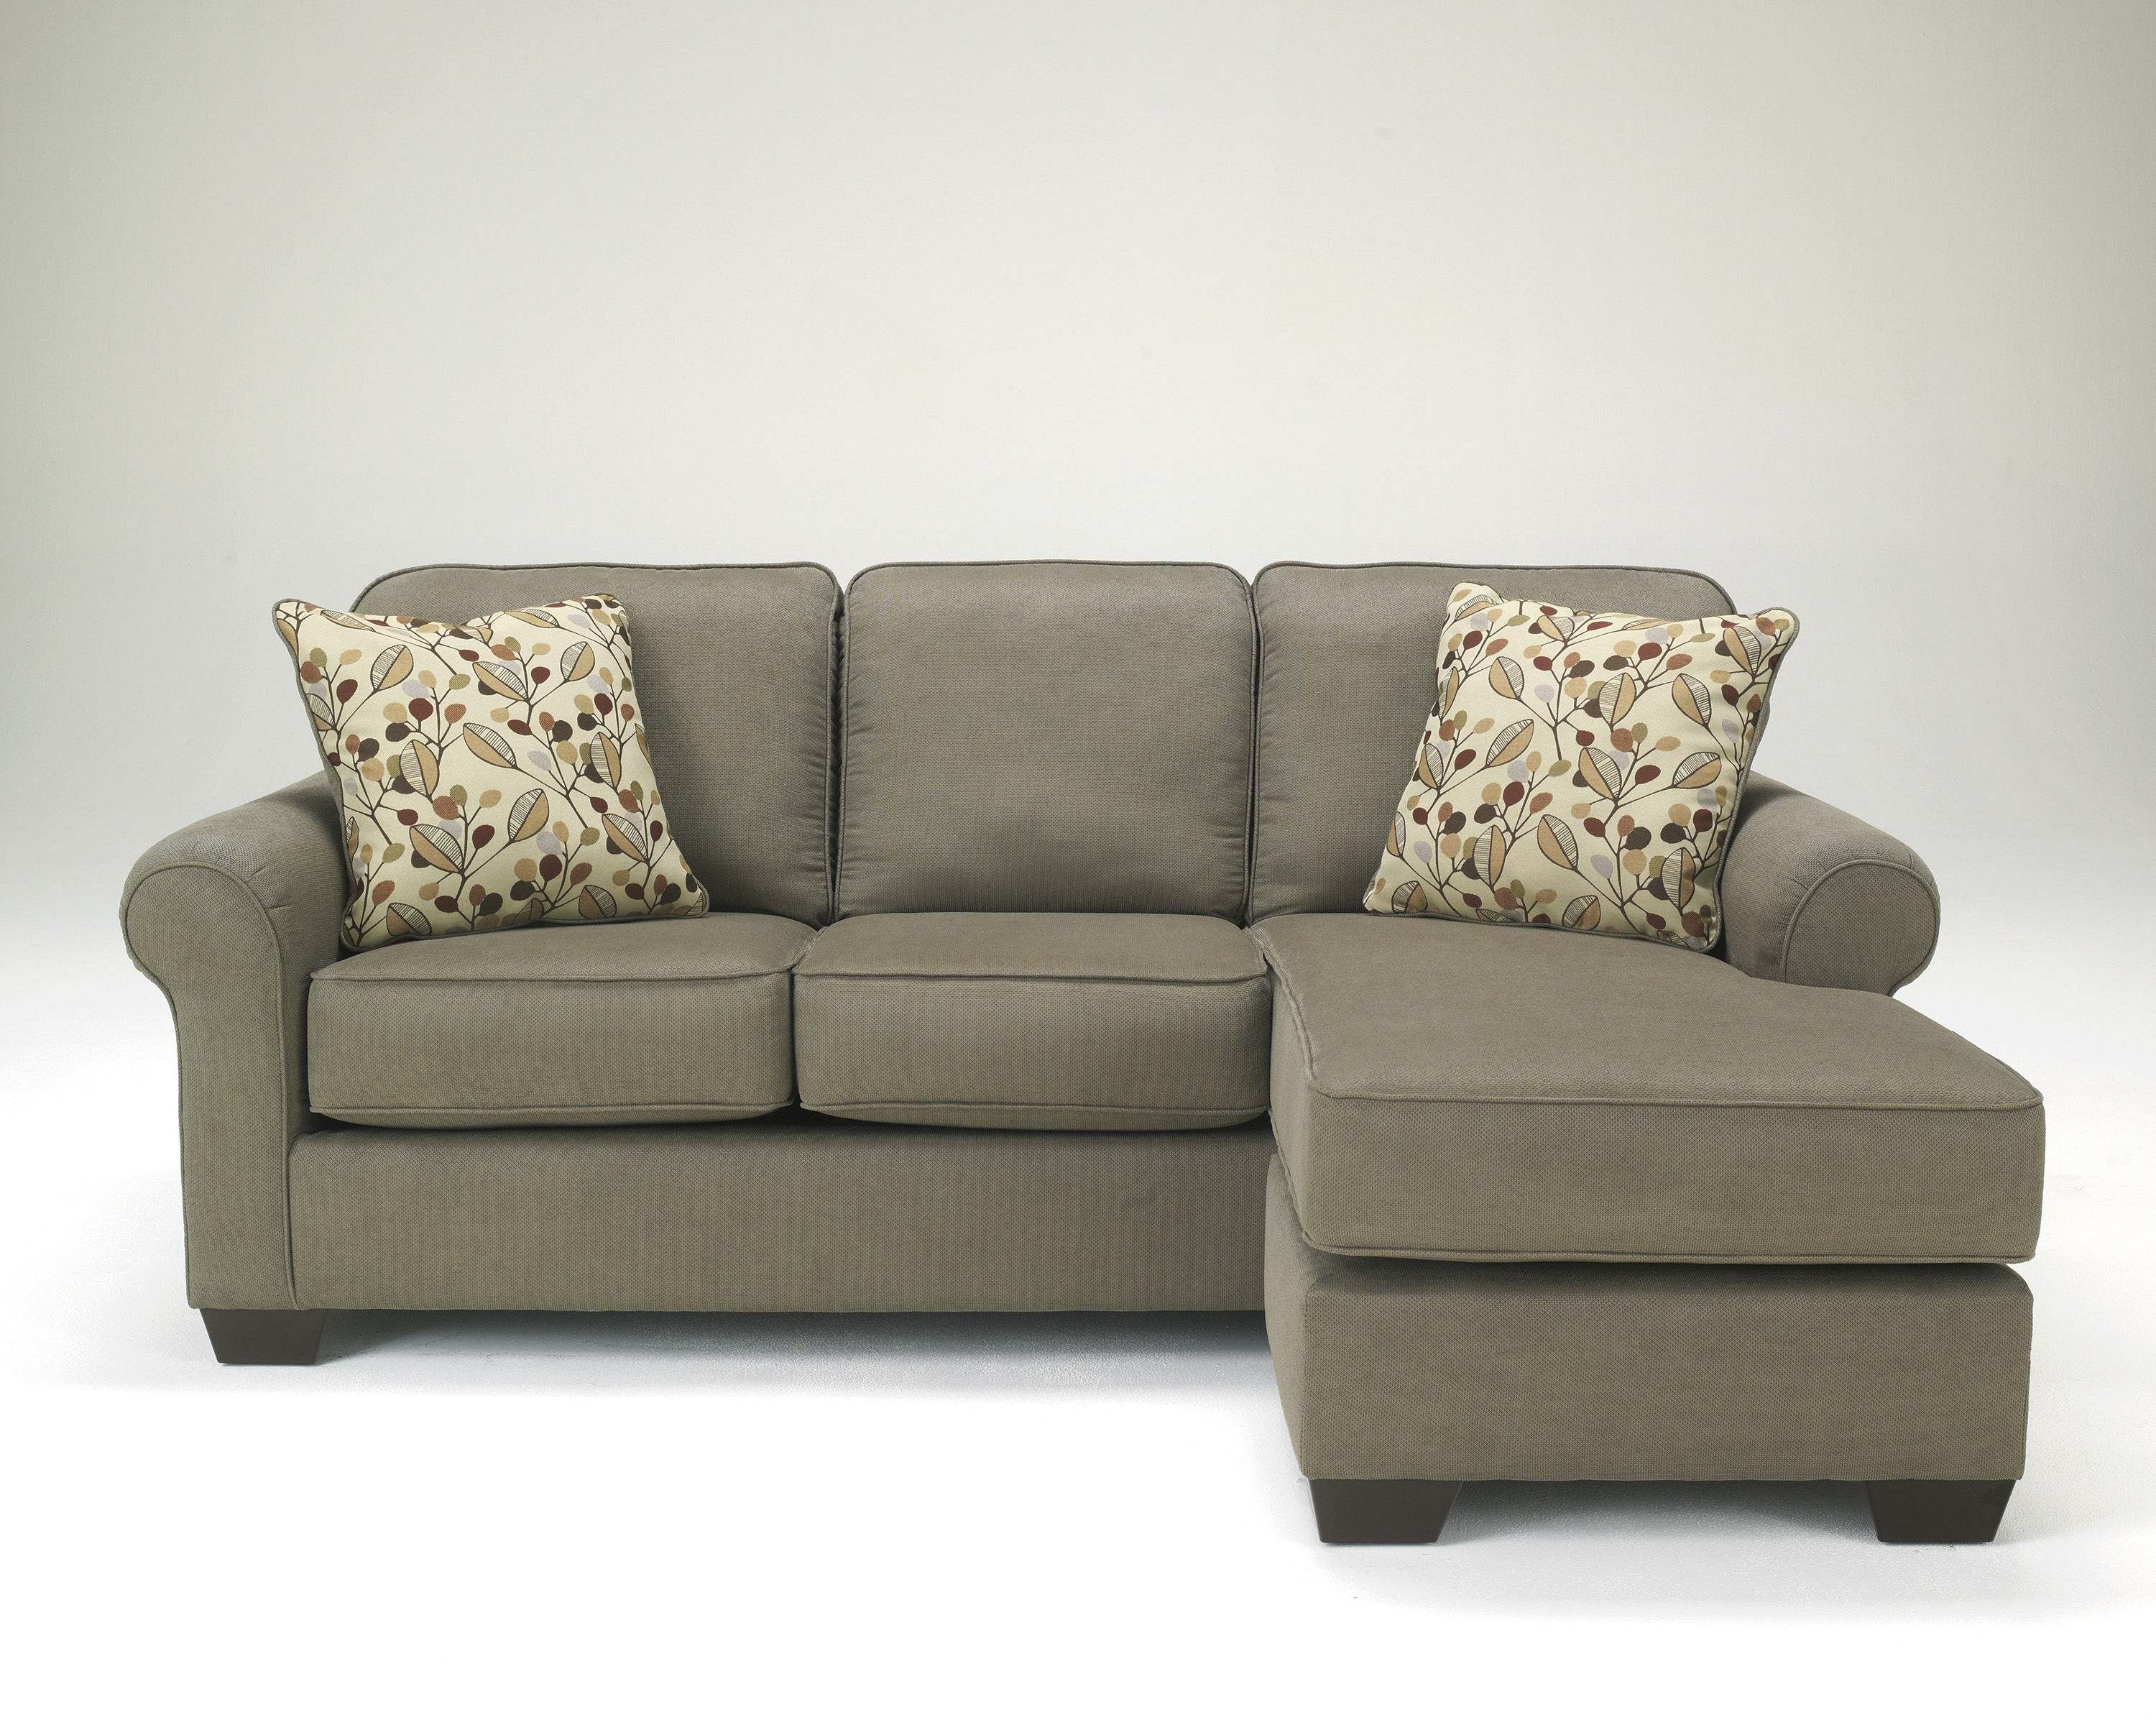 Chaise Lounge Sofa Ashley Furniture – Furniture Designs Inside Preferred Ashley Furniture Chaise Lounges (View 13 of 15)